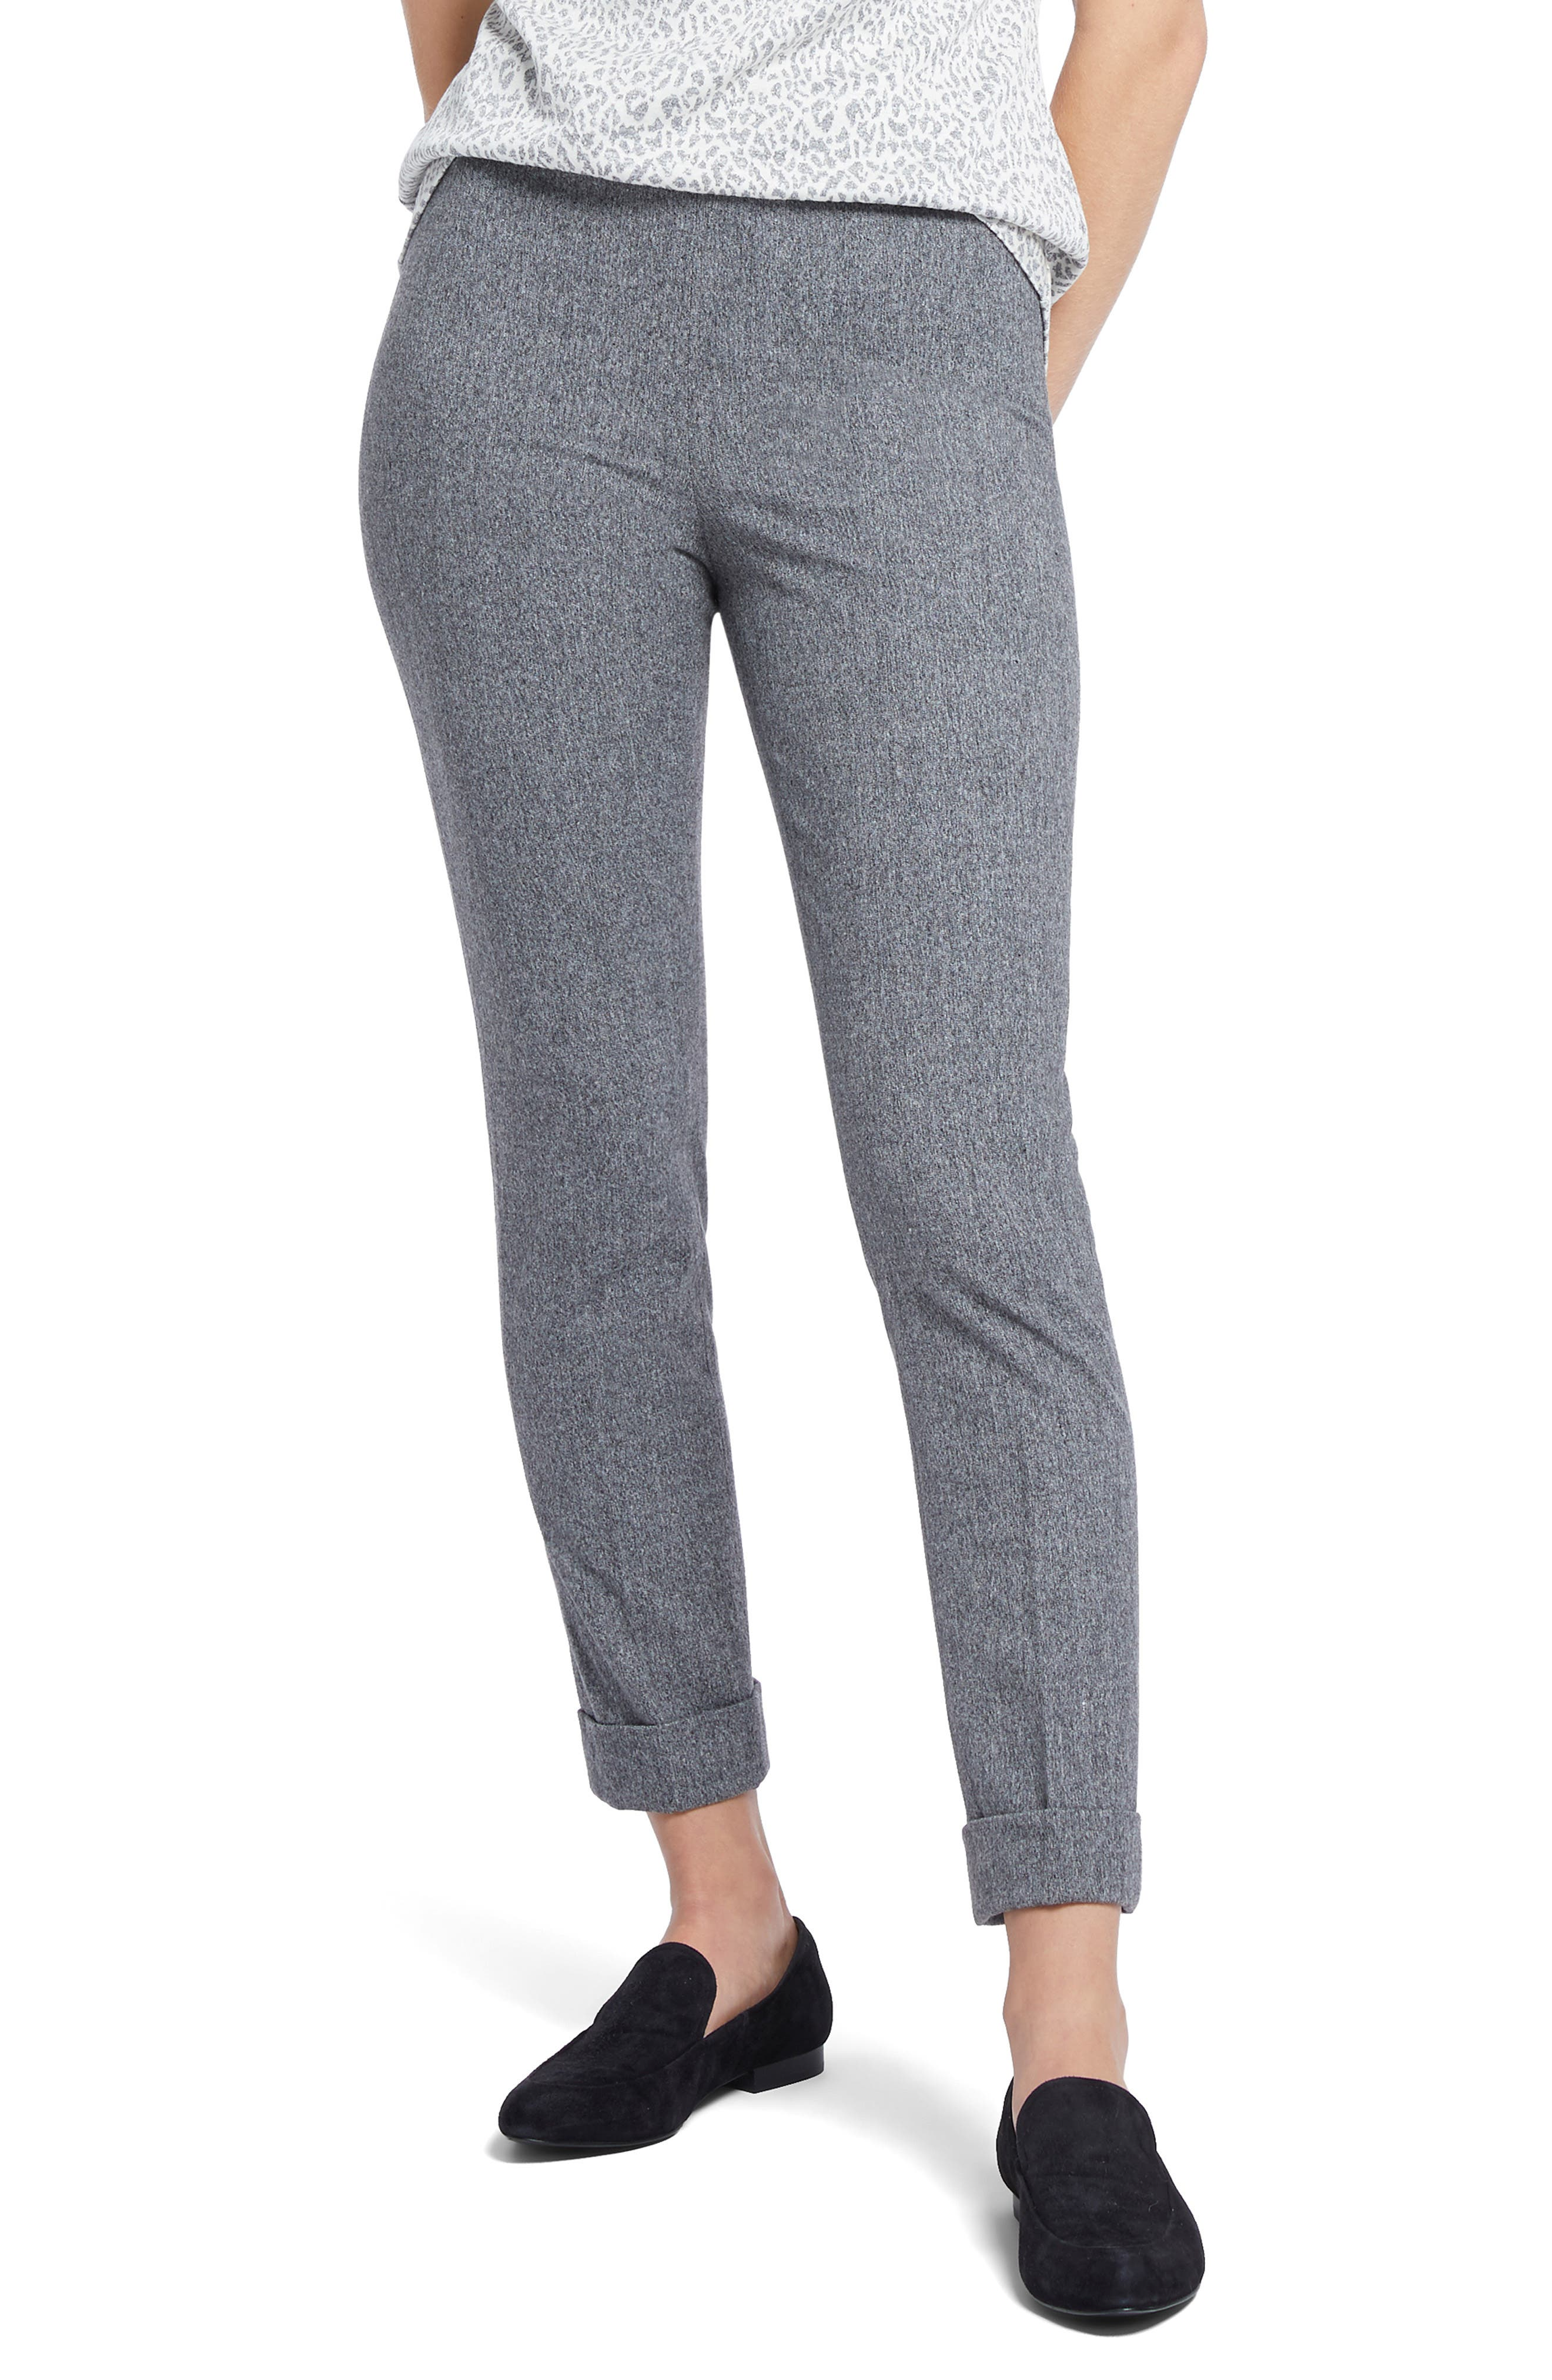 File these flannel pants under cozy-chic (although we\\\'re pretty sure you\\\'d rather wear them) thanks to a tapered-leg, ankle-length cut and fold-over cuffs. Style Name: Nic+Zoe Forever Flannel Ankle Pants (Regular & Petite). Style Number: 5880235. Available in stores.